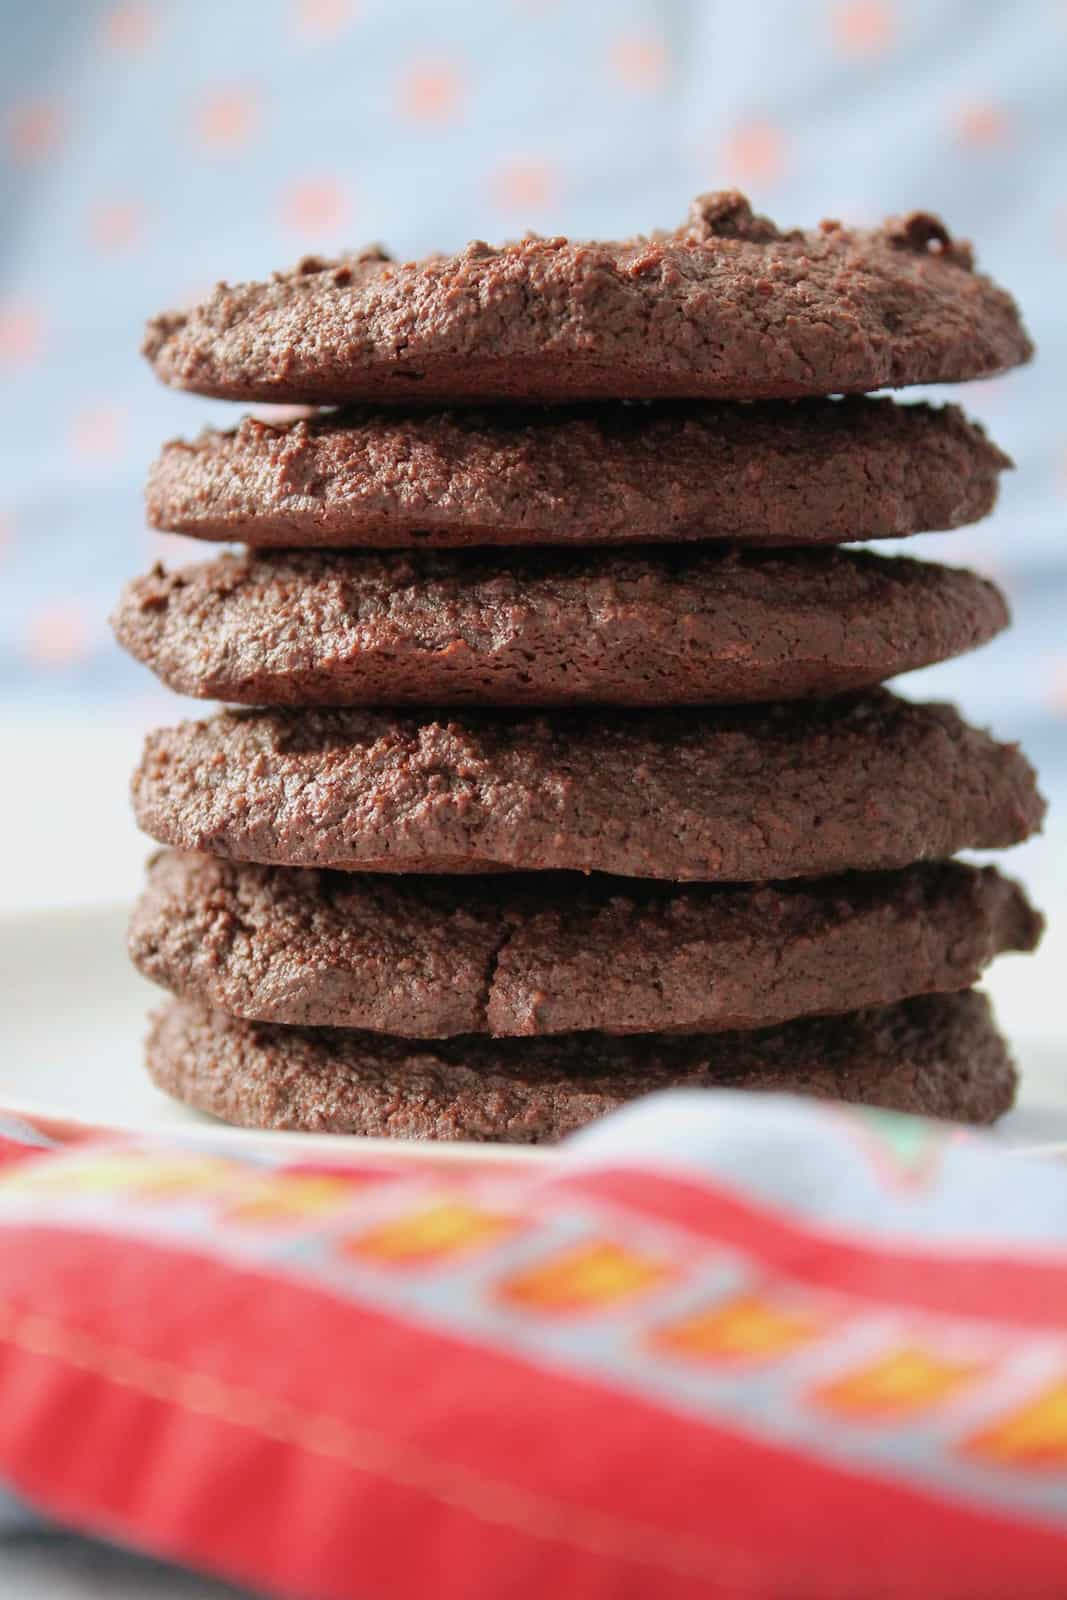 Close up shot of six gluten free chocolate cookies stacked on top of each other on a white plate surrounded by blue table cloth with a red floral border